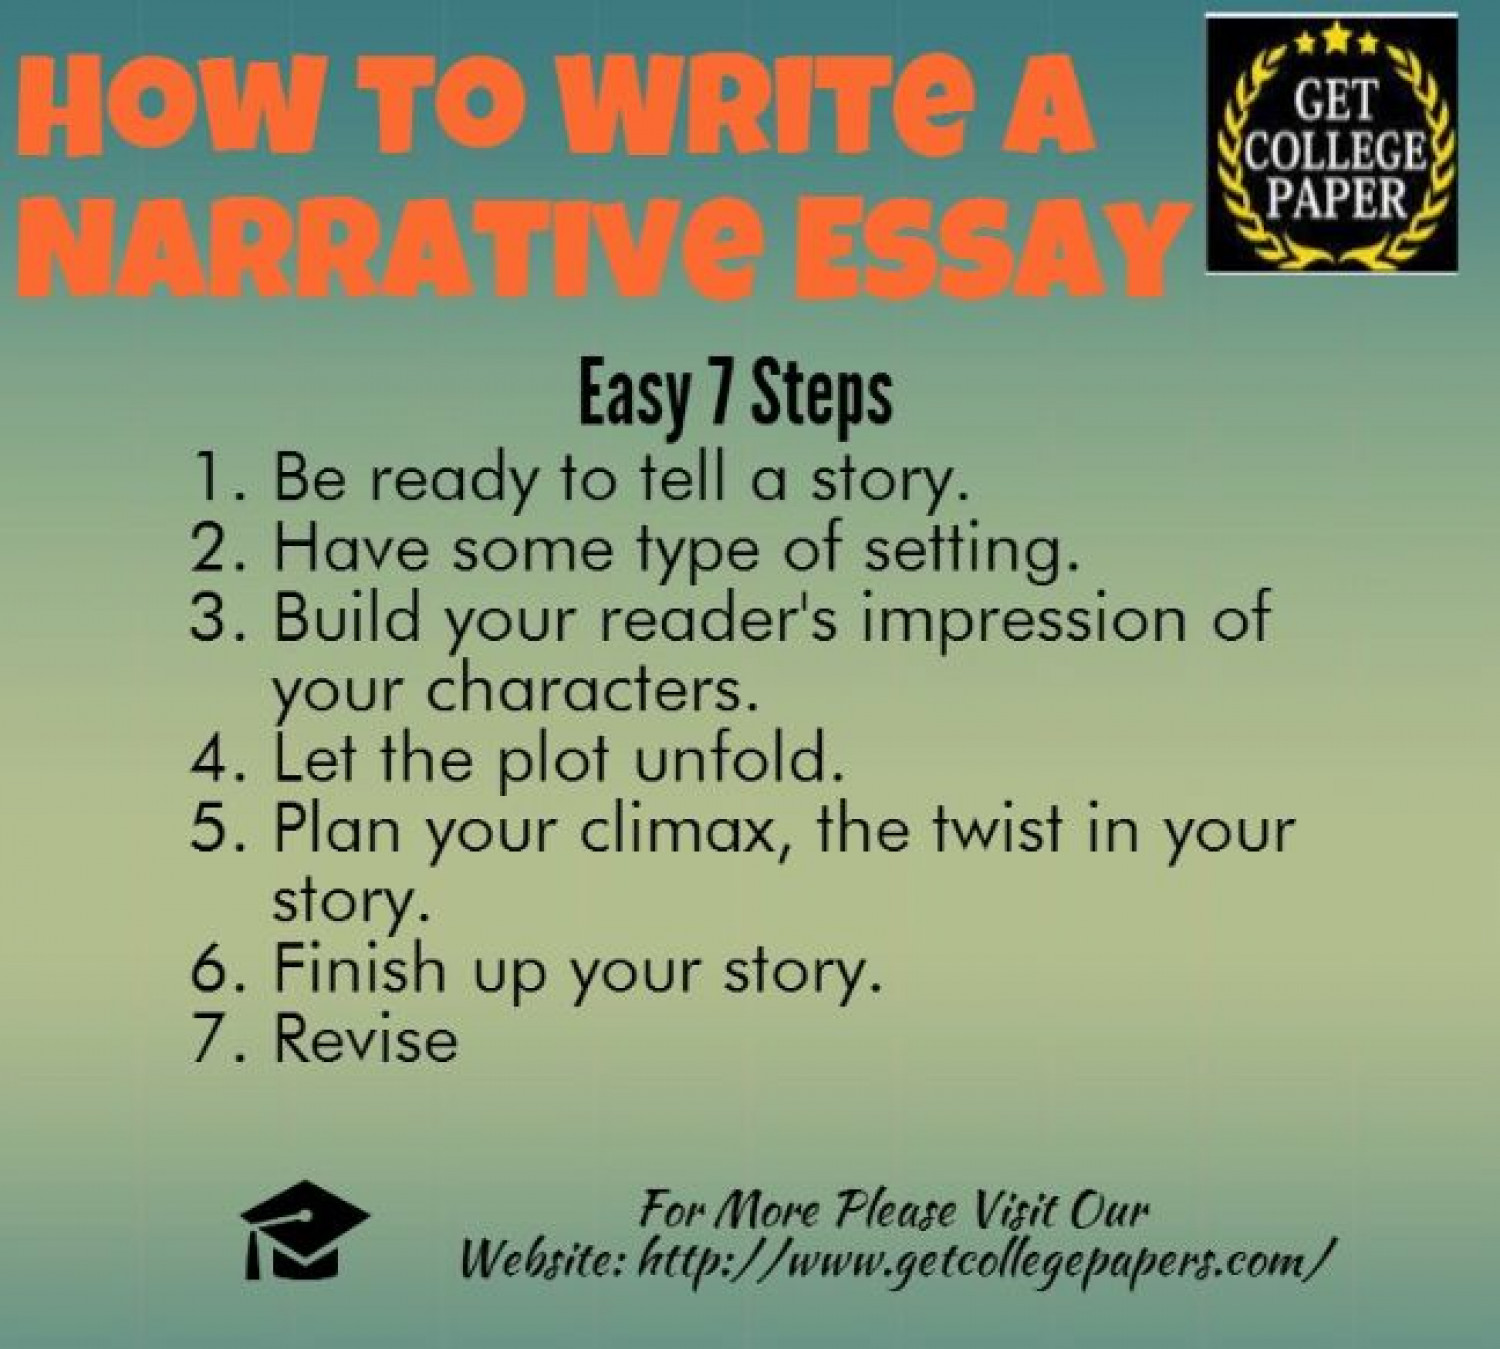 Creating a thesis for a narrative essay